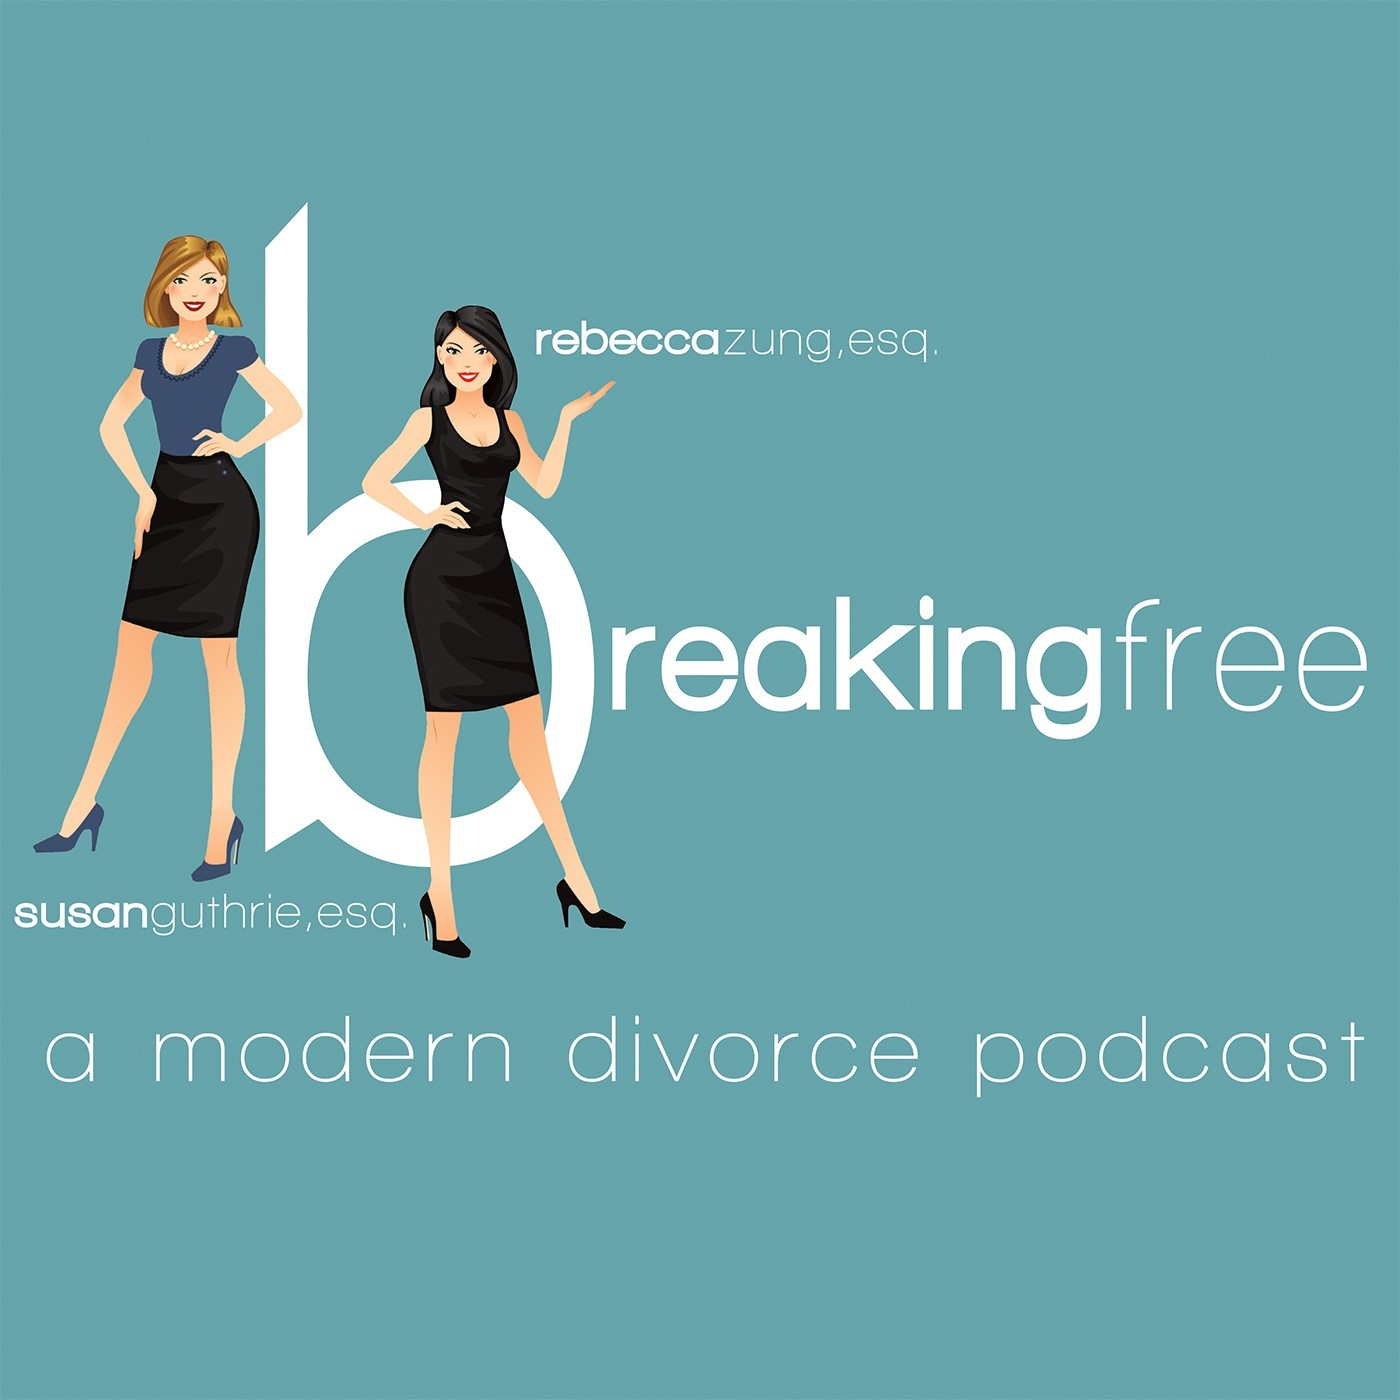 """The Trump Effect:  Crazy But True Reasons that People Have Filed For Divorce"" on Breaking Free: A Modern Divorce Podcast #144"